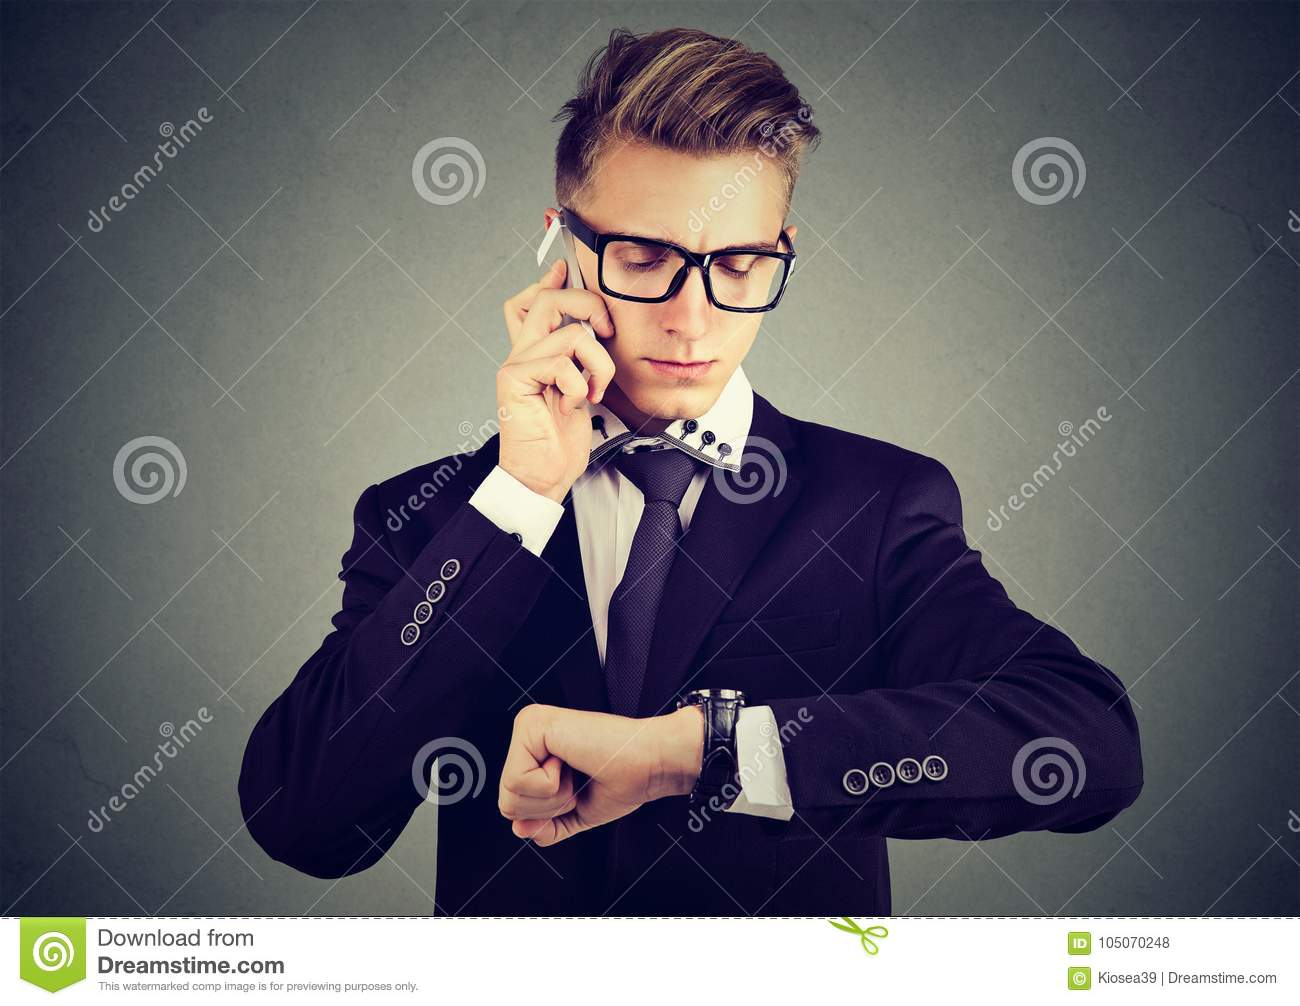 Businessman looking at wrist watch, talking on mobile phone.